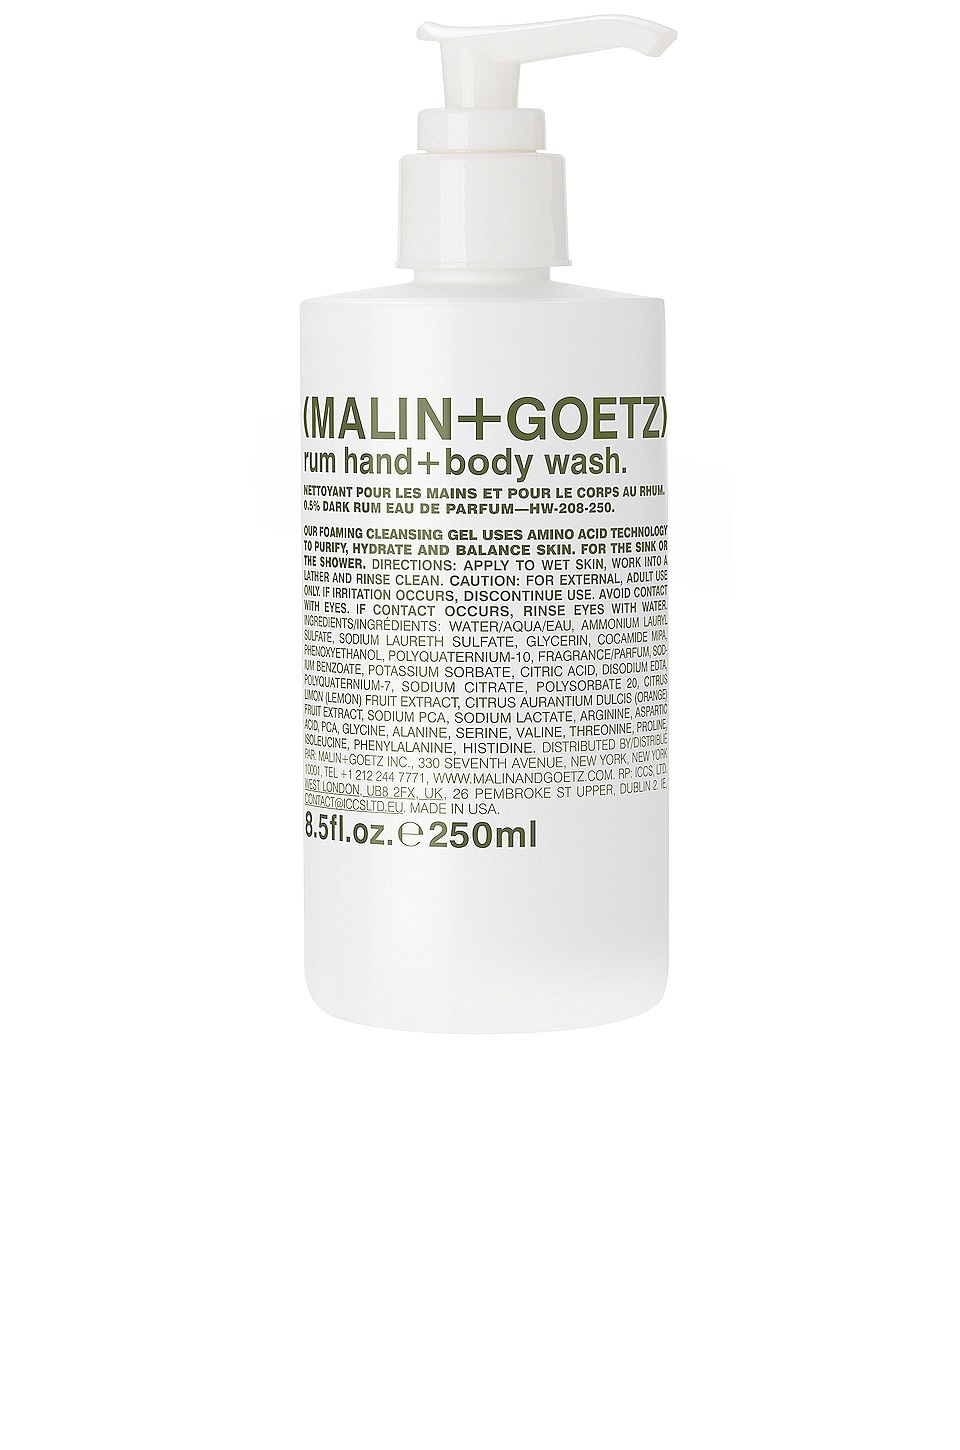 MALIN+GOETZ Rum Hand + Body Wash